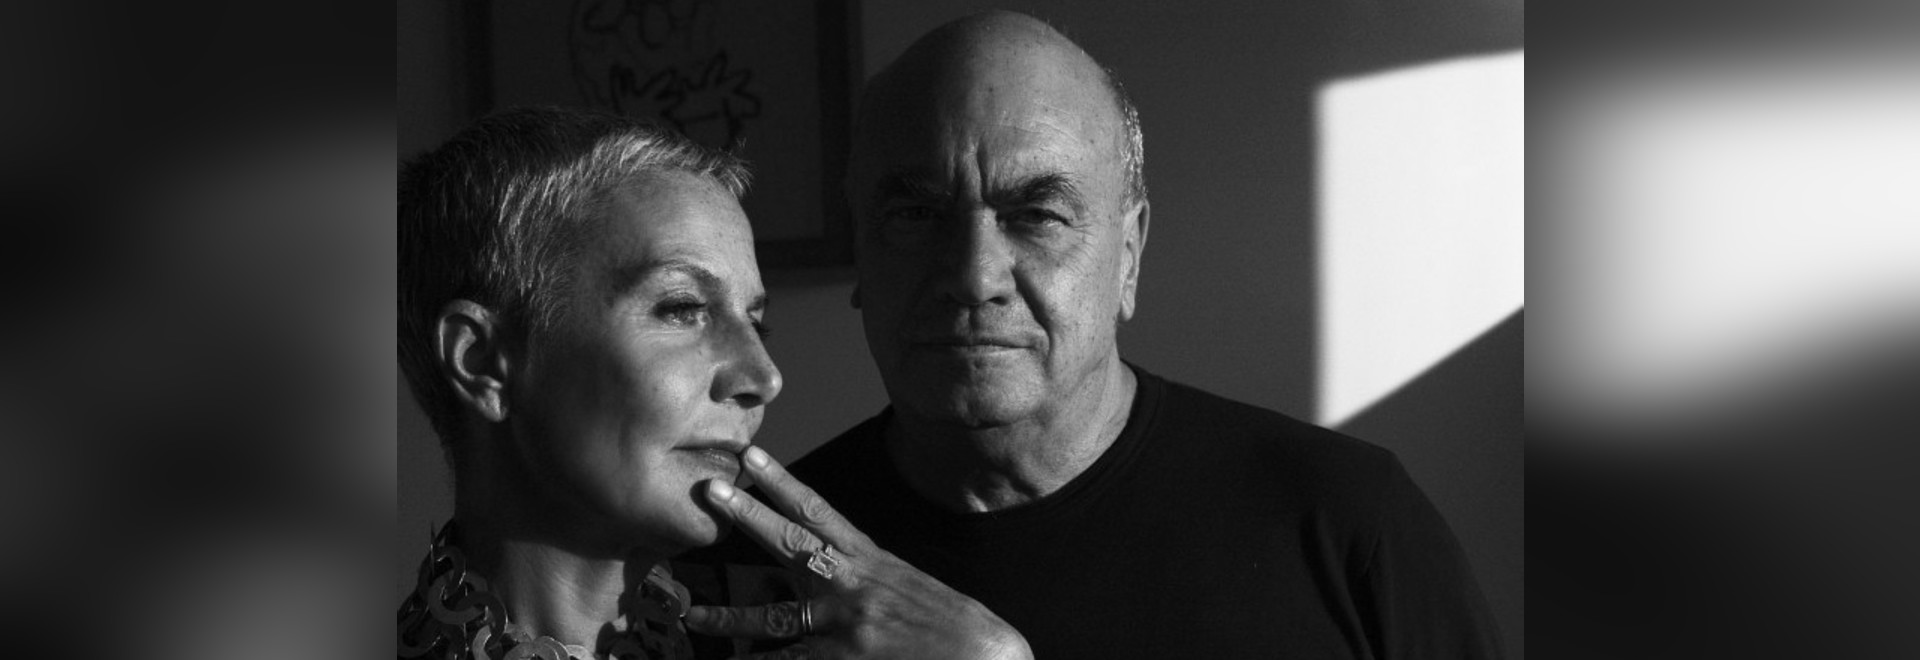 ARCHITECT SPOTLIGHT: MASSIMILIANO & DORIANA FUKSAS